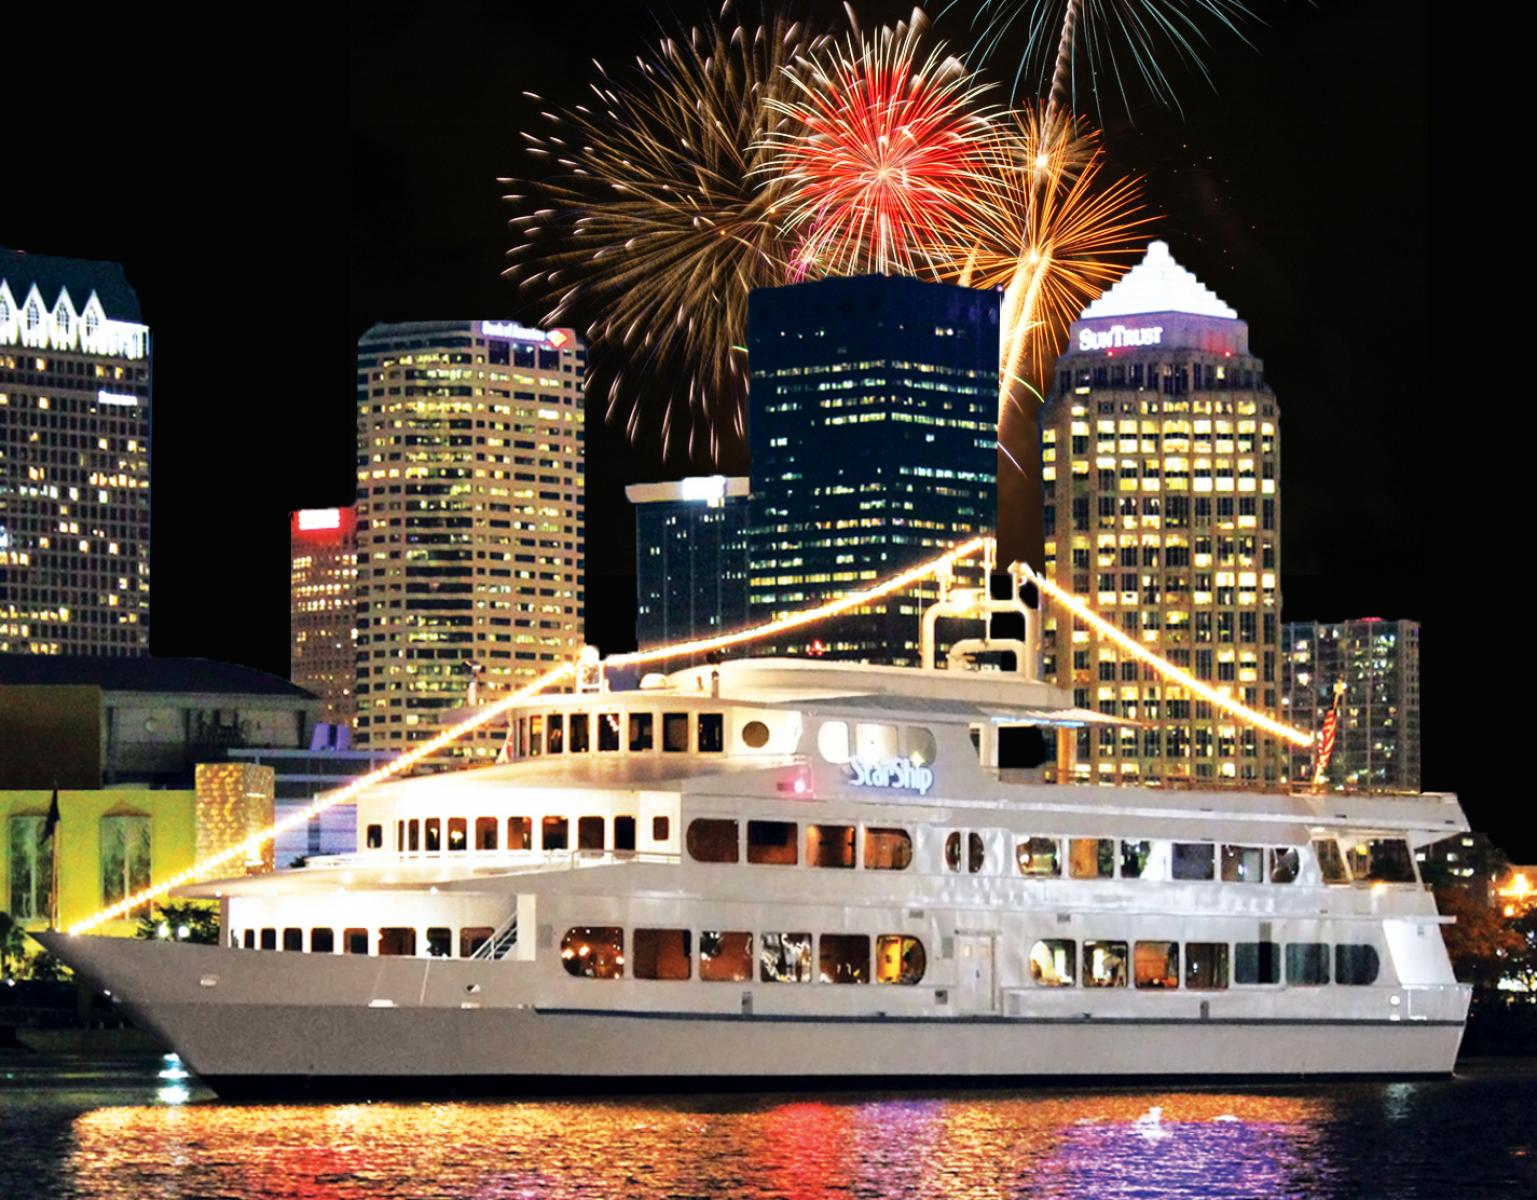 yacht starship fourth of july fireworks cruise tampa fl jul 4 2016 6 00 pm. Black Bedroom Furniture Sets. Home Design Ideas